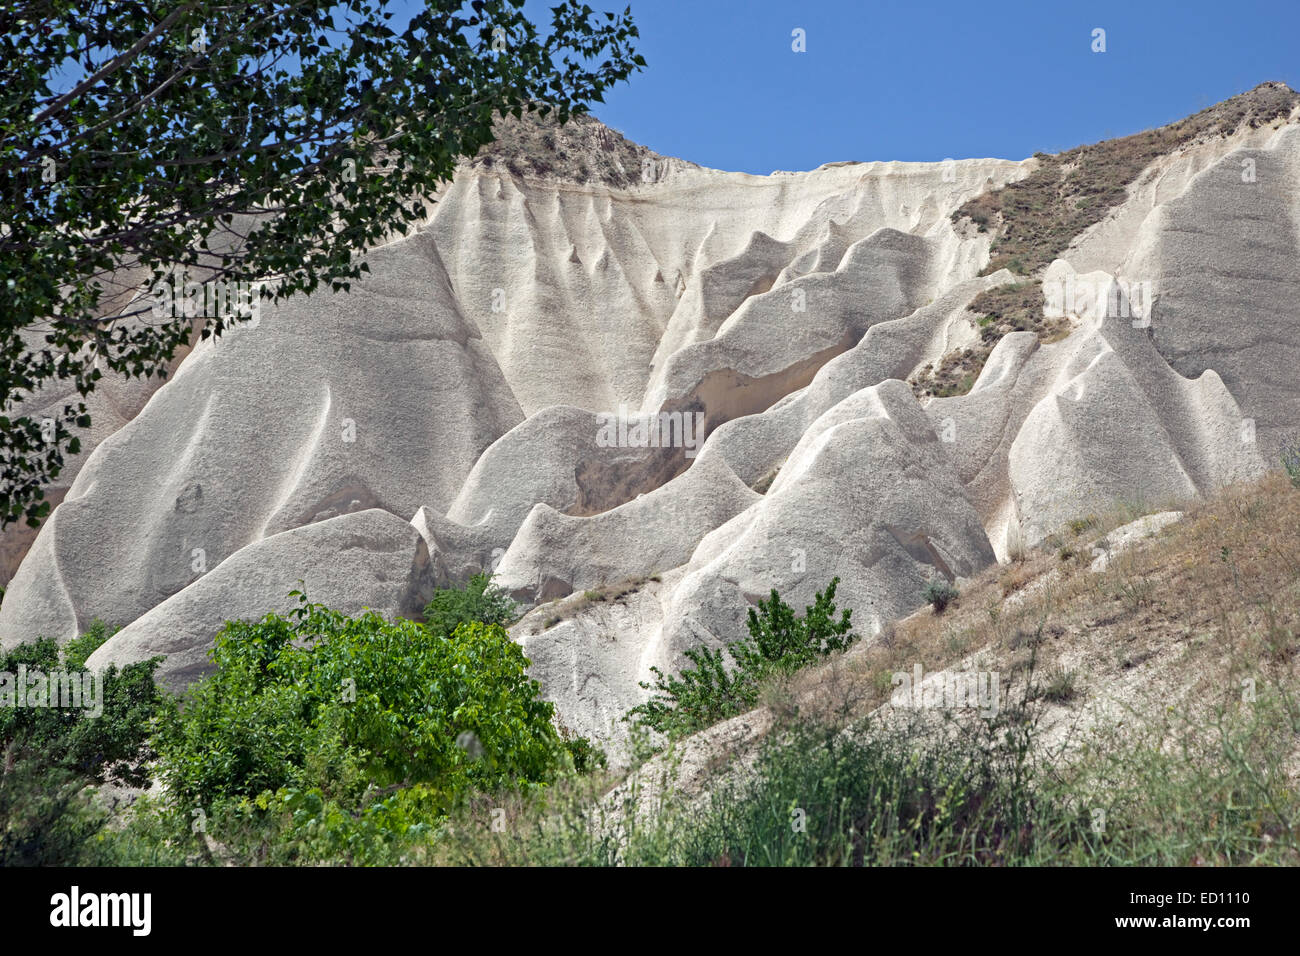 Gullies in water eroded white sandstone rock formations at Cappadocia in Central Anatolia, Turkey - Stock Image